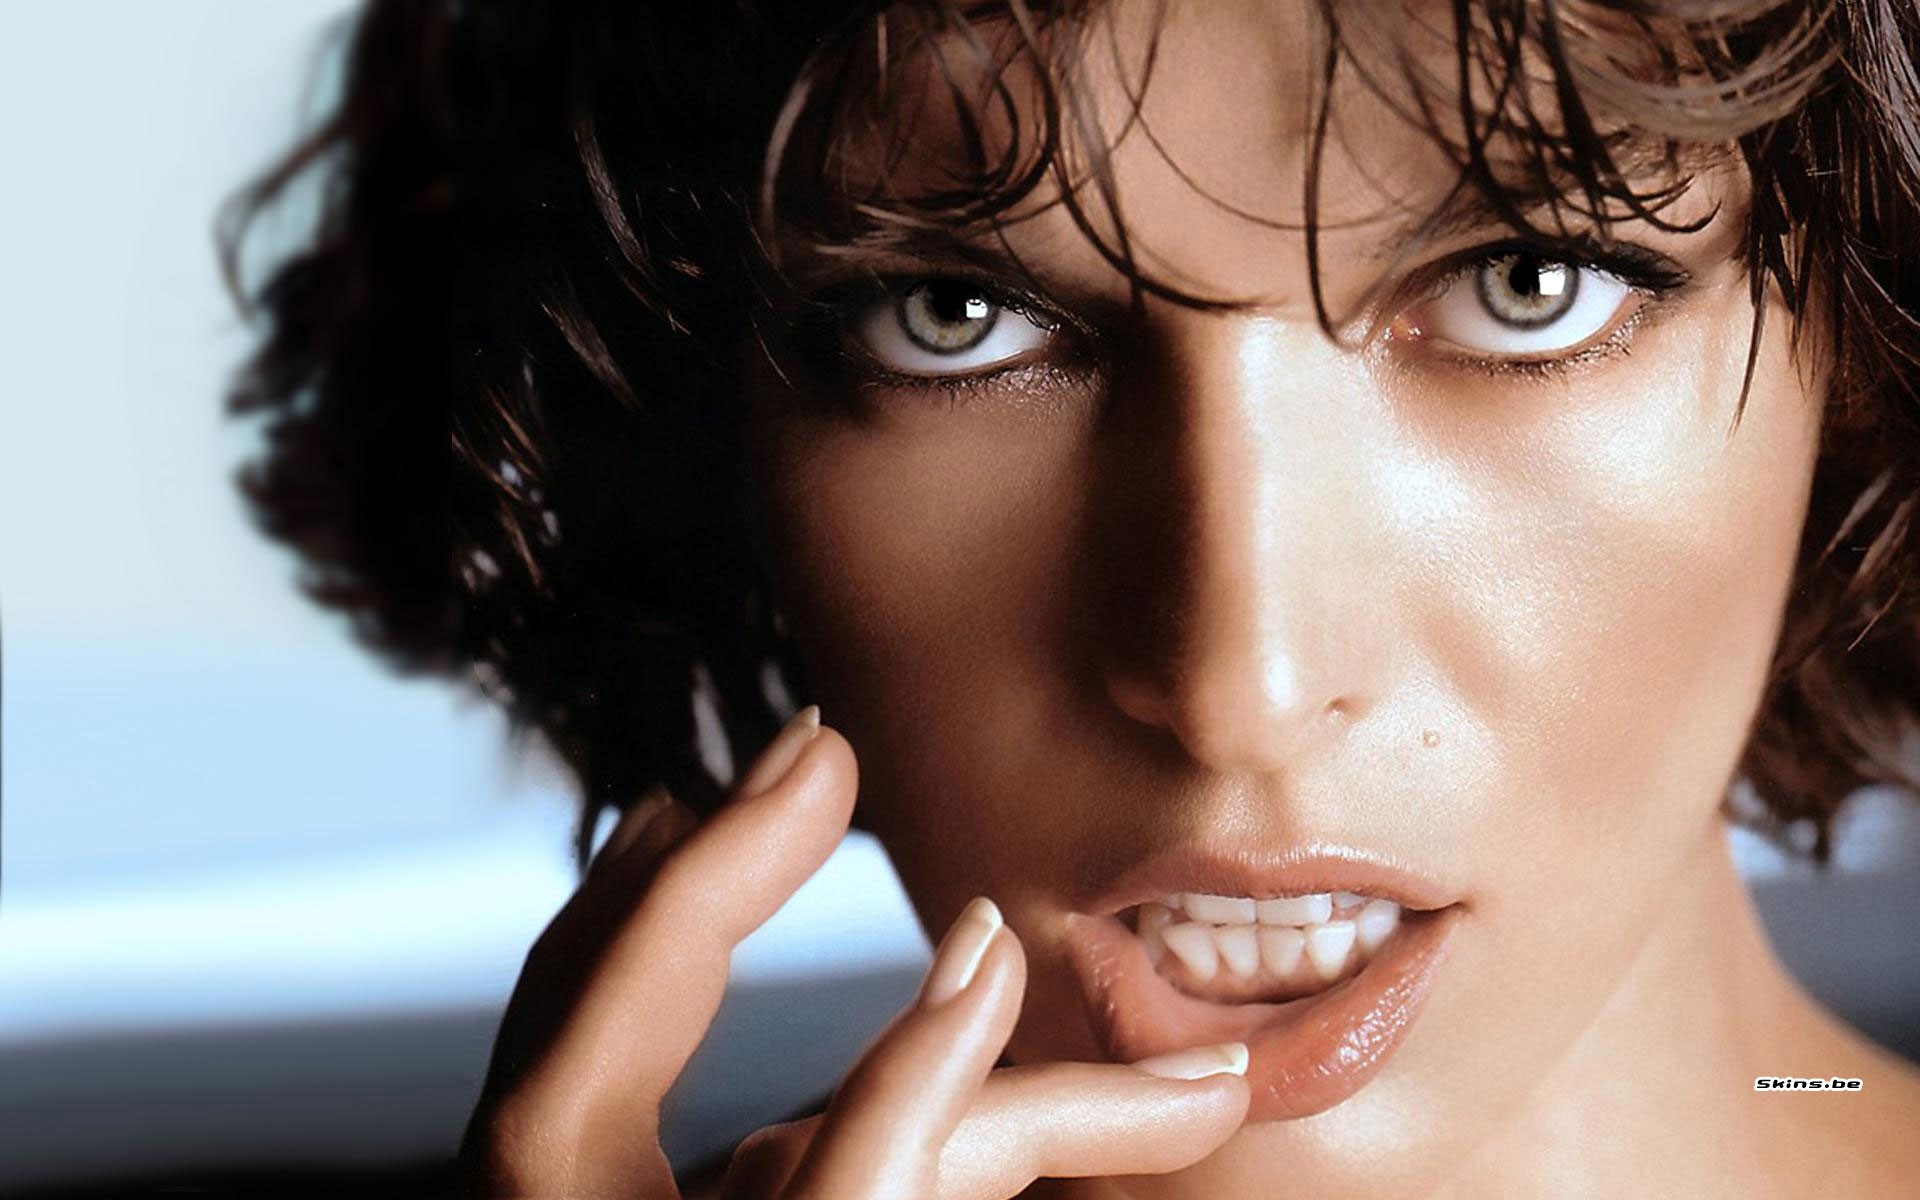 http://www.a-gc.com/images/2012/09/women-actress-lips-milla-jovovich-HD-Wallpapers.jpg